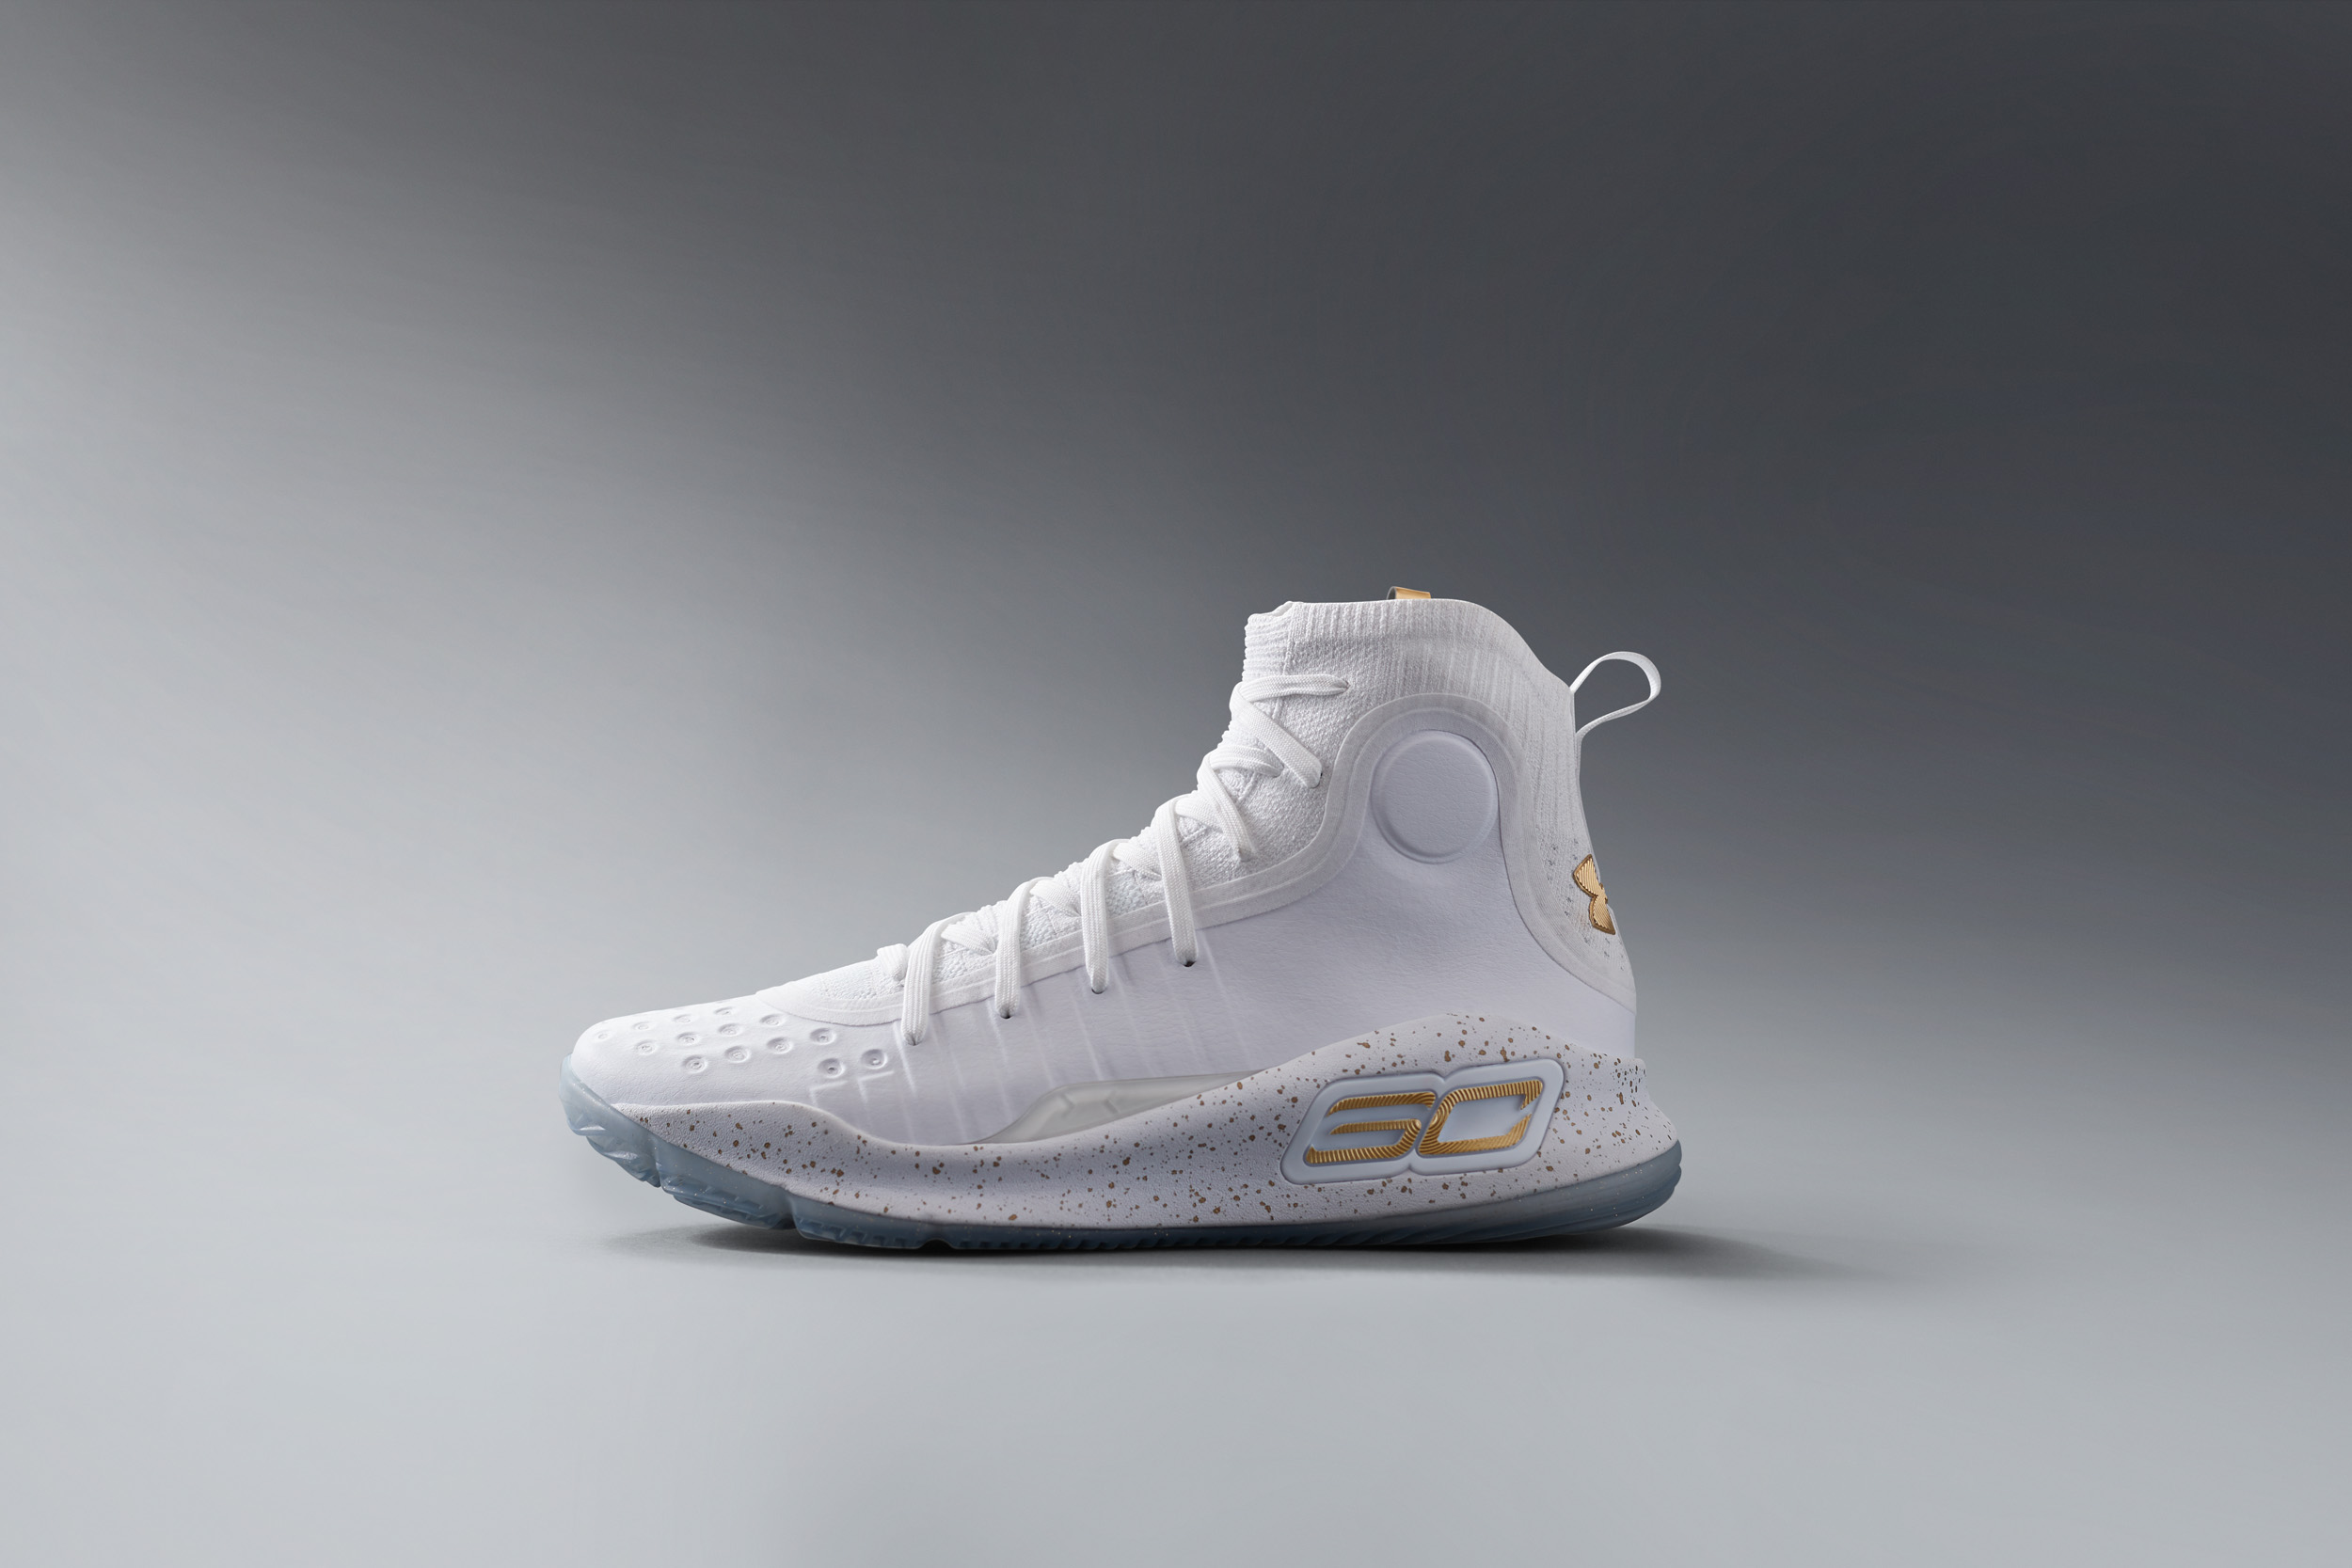 40a0e1f0282a The Under Armour Curry 4 White Gold Drops This Saturday - WearTesters